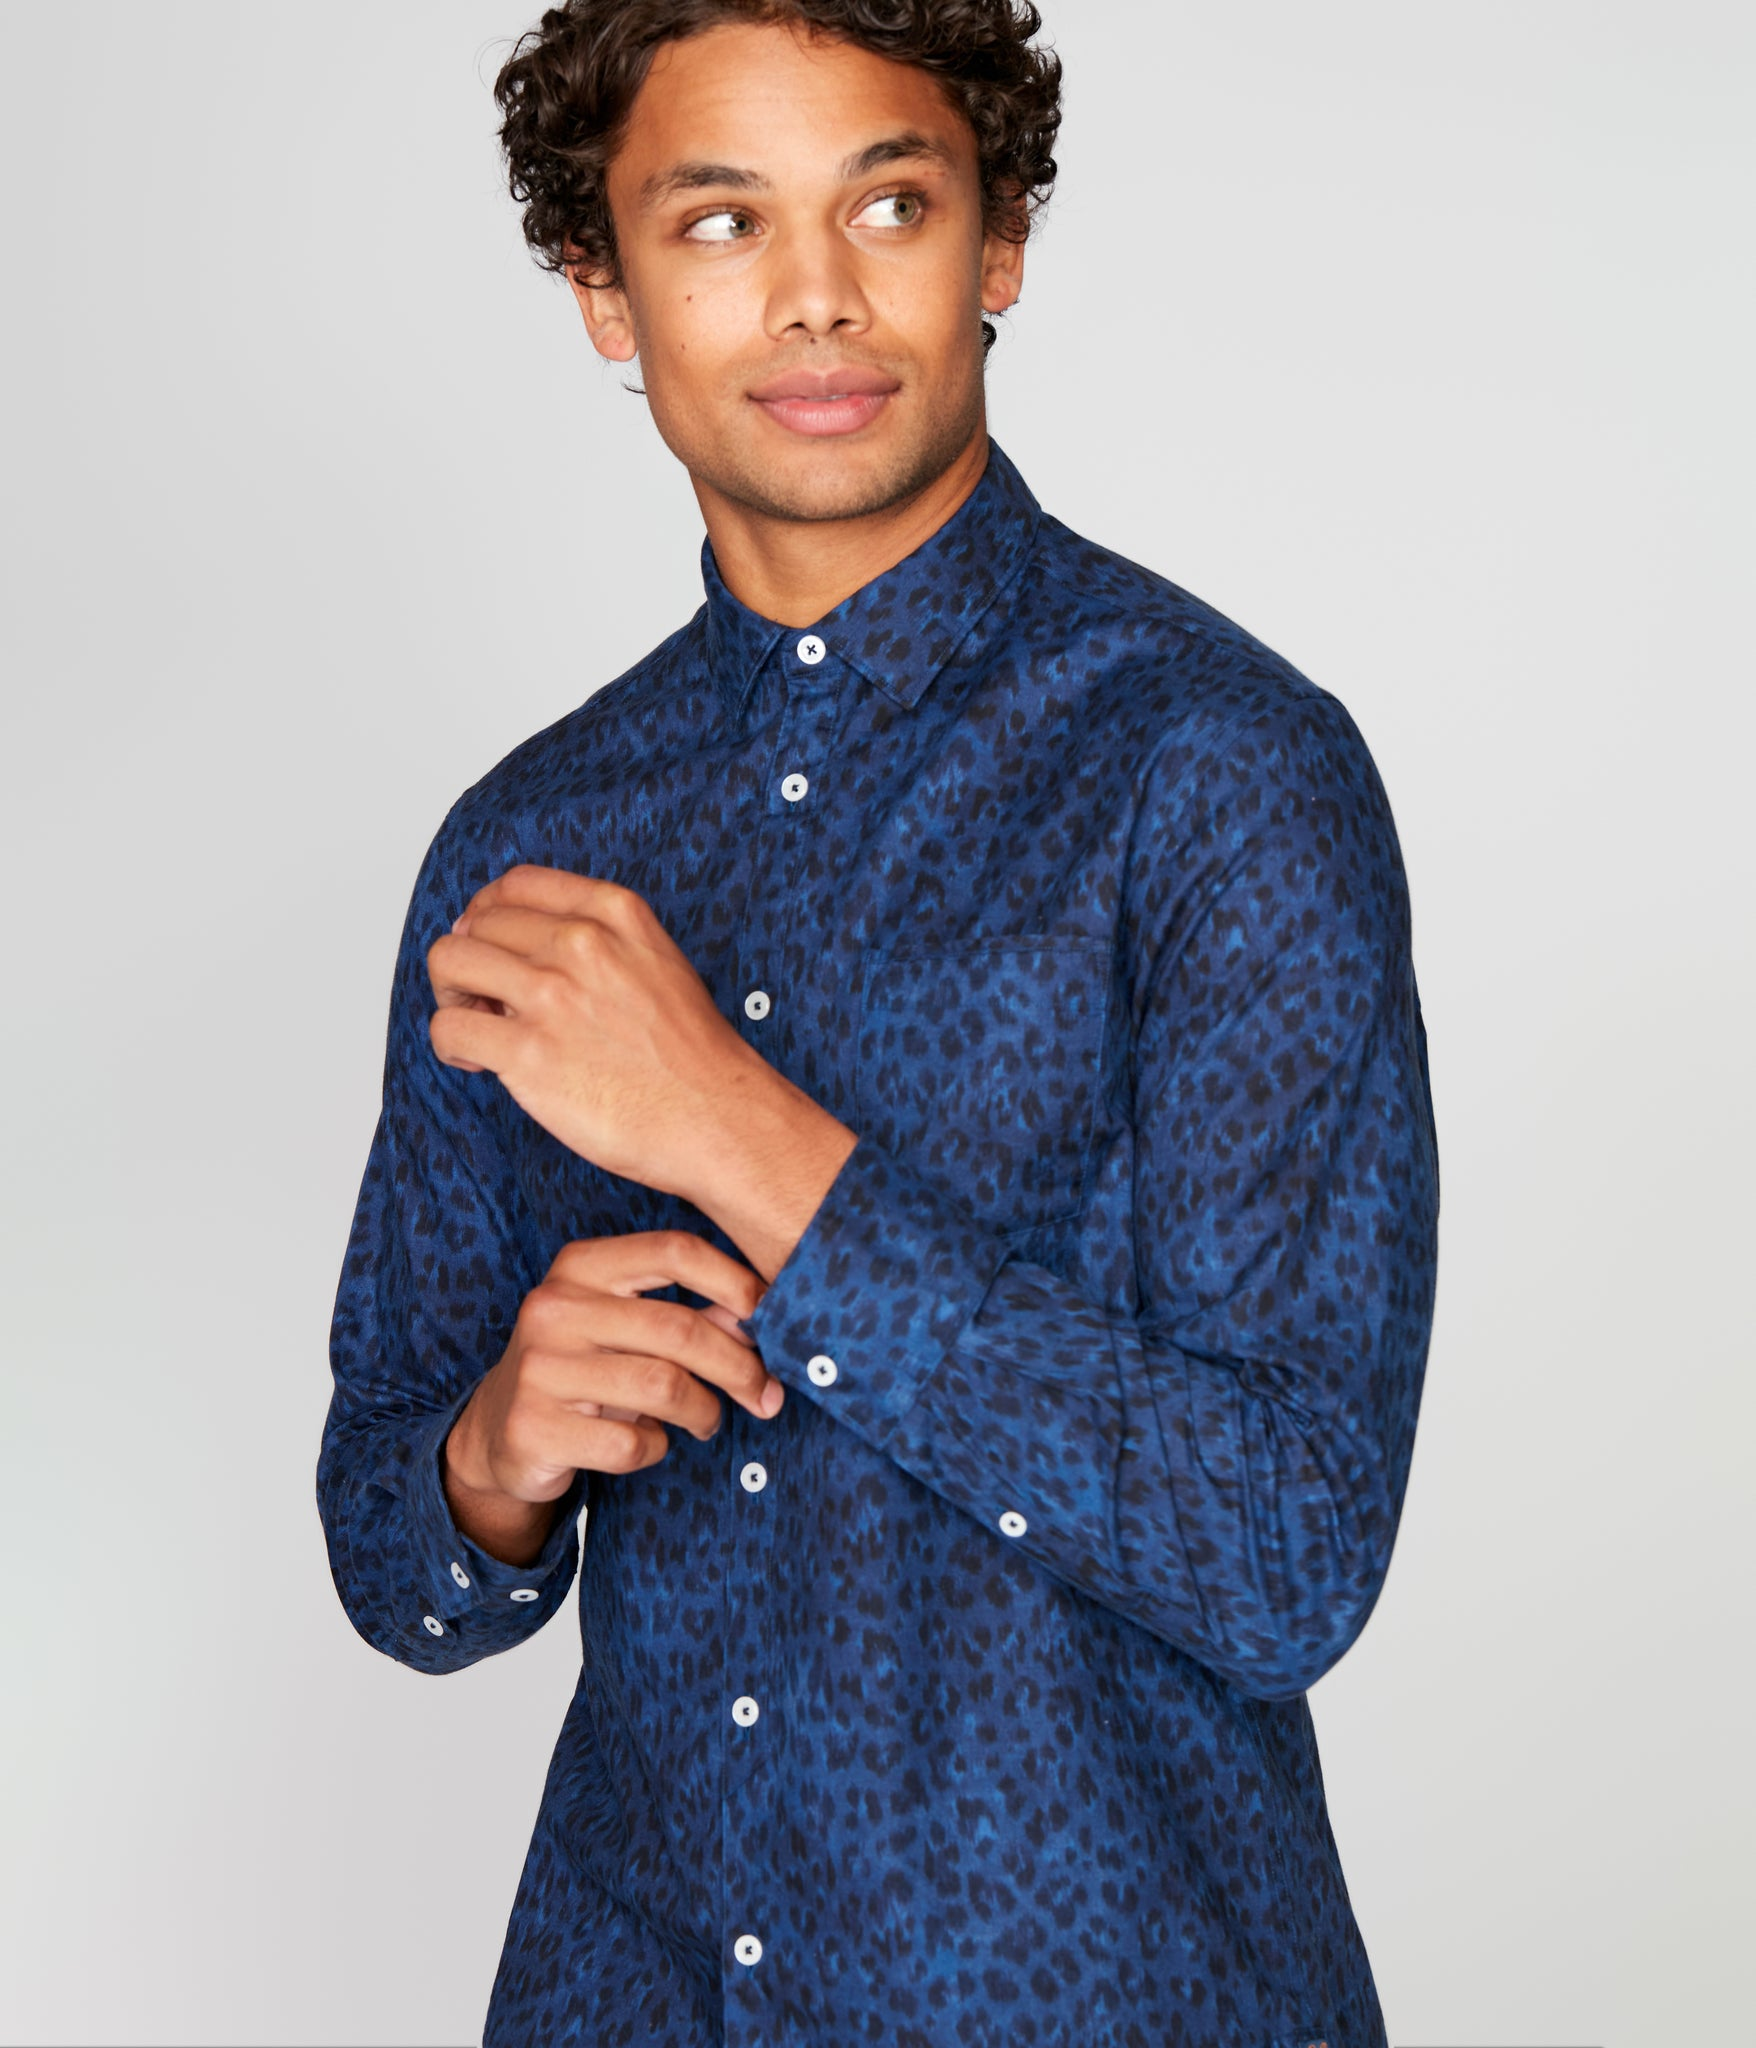 On-Point Print Shirt - Indigo Ombre Animale